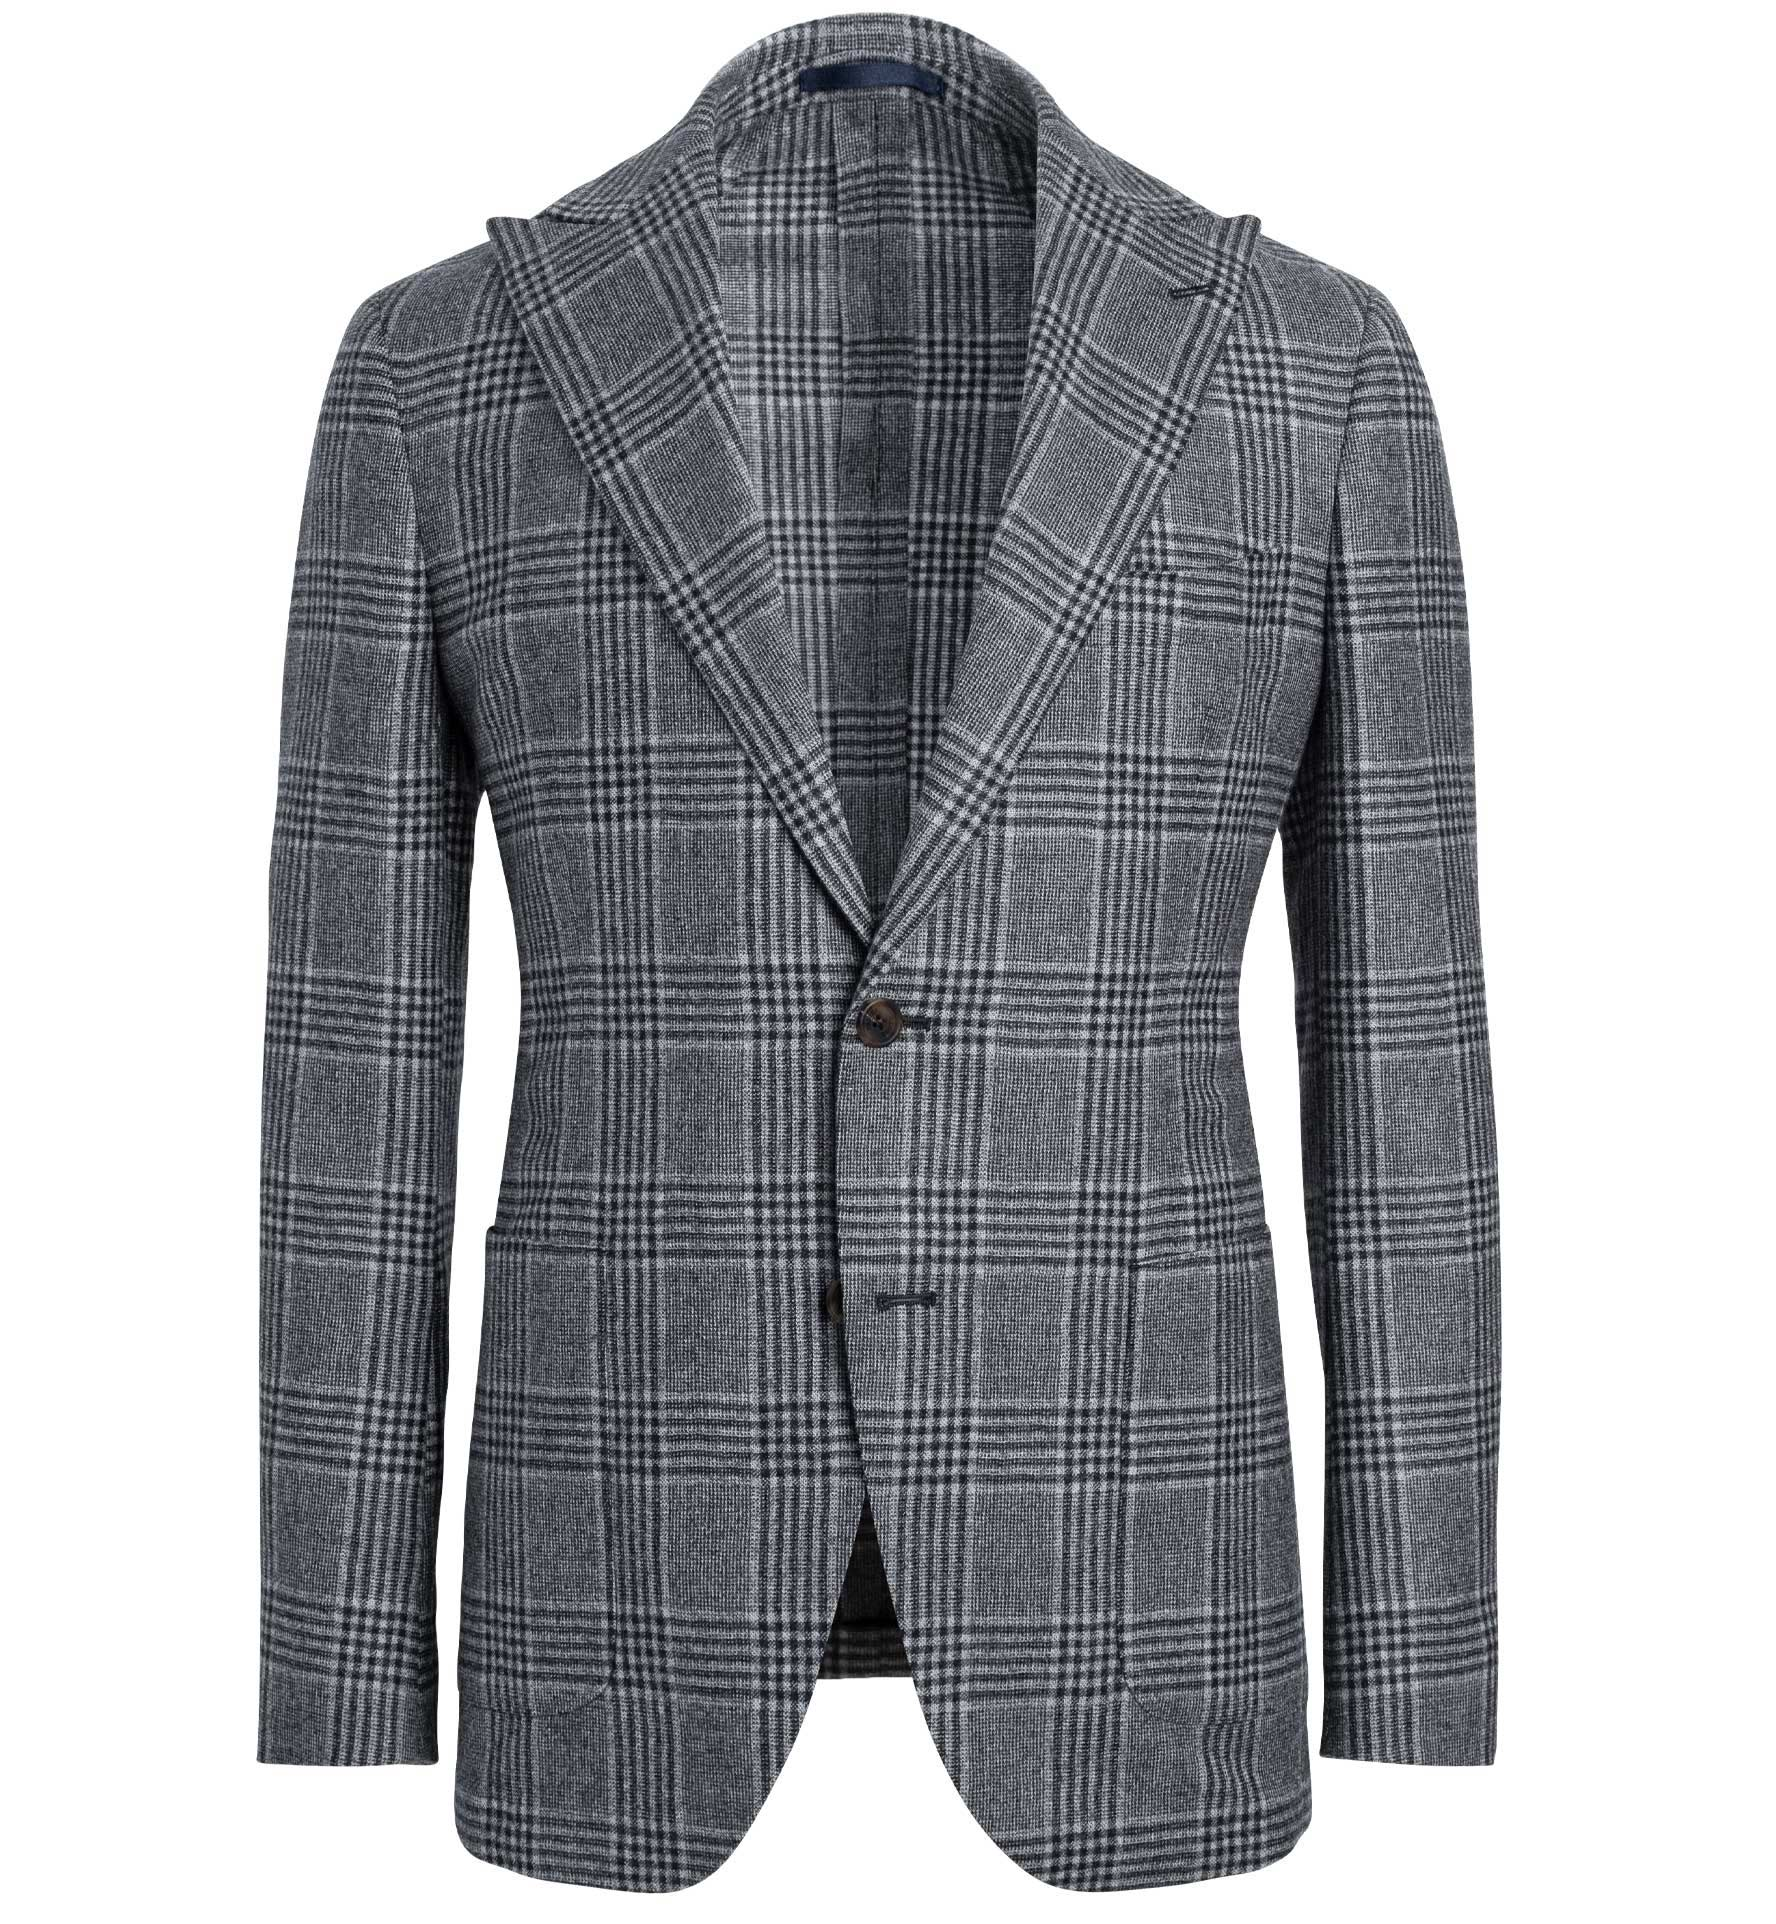 Zoom Image of Bedford Light Grey Large Glen Plaid Wool Jacket